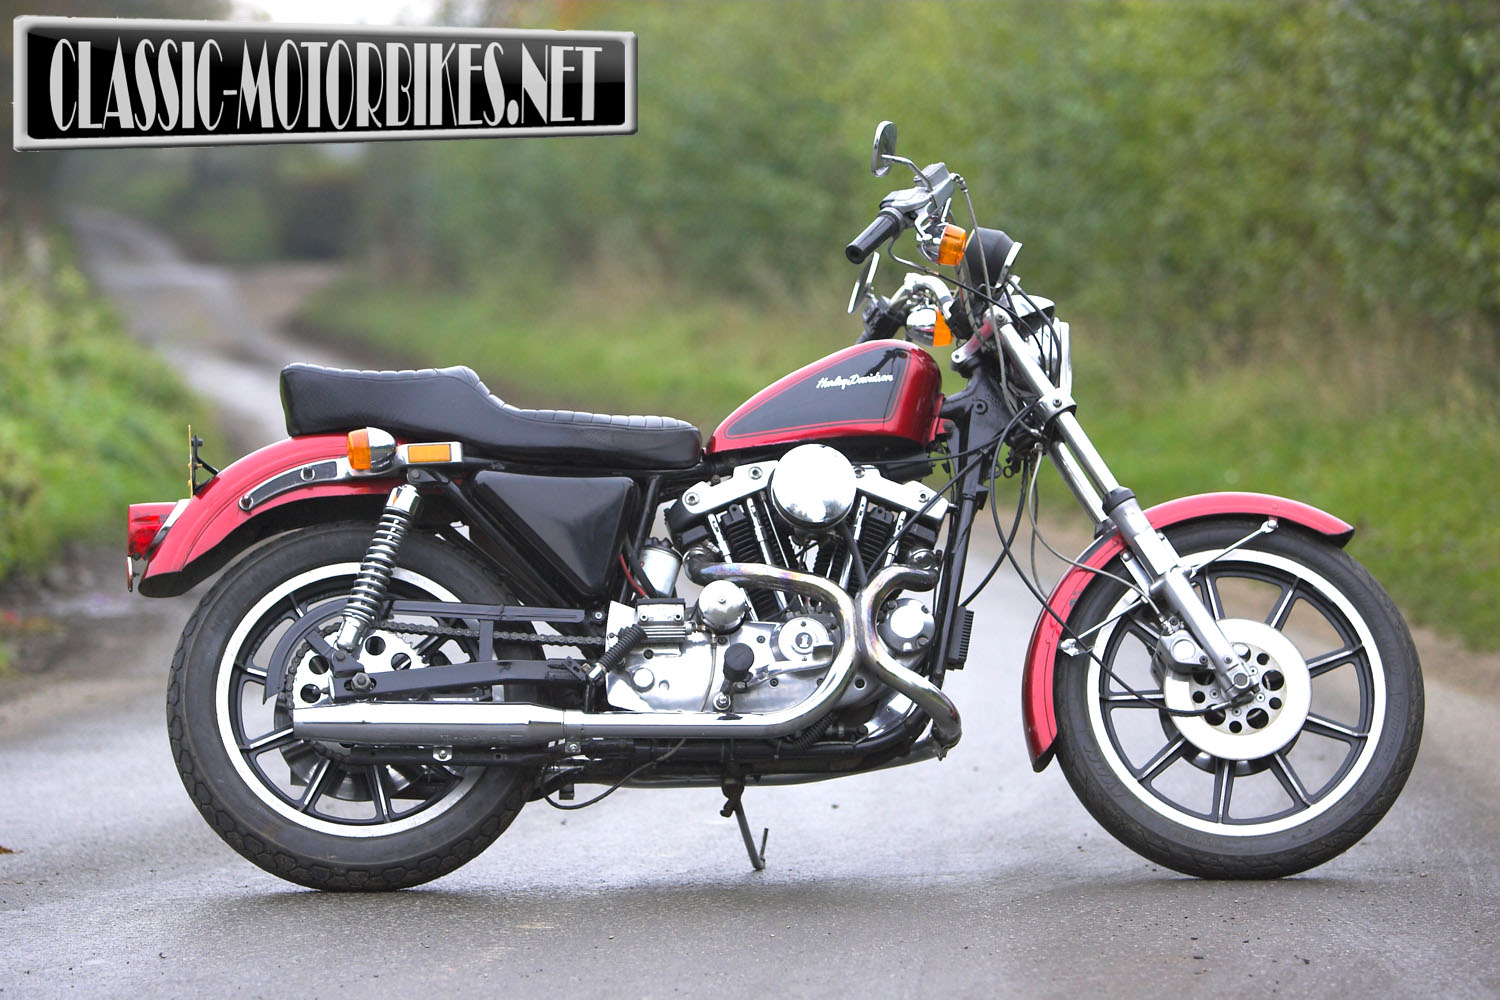 Bien-aimé Harley Davidson Sportster | Classic Motorbikes WH83